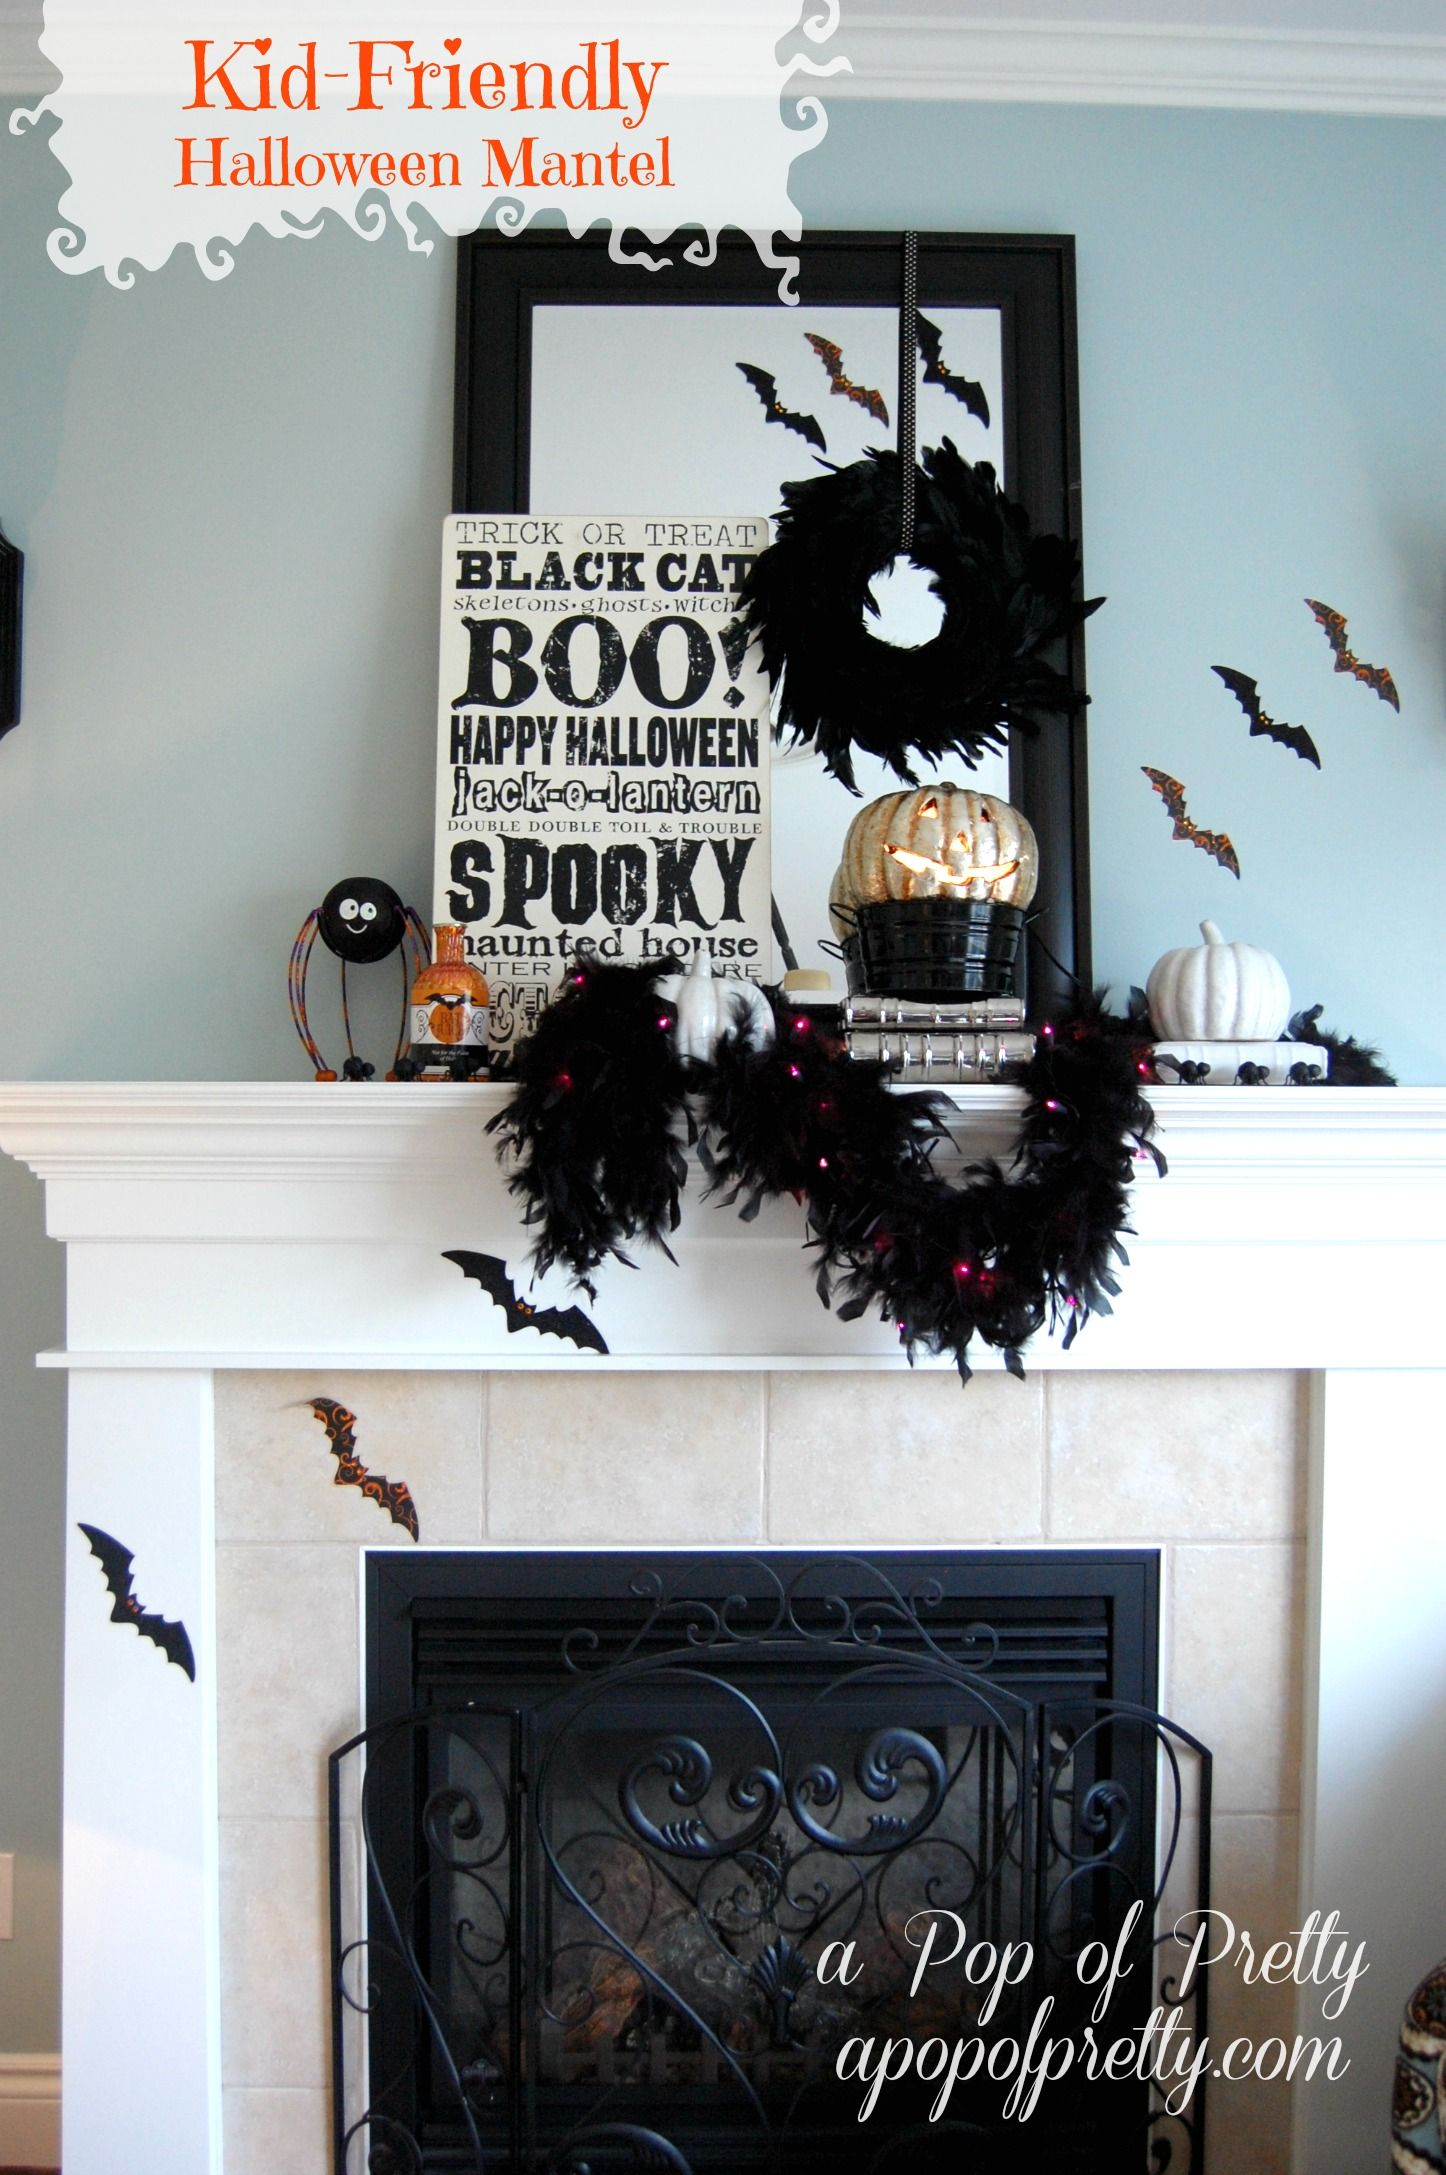 Kid-Friendly Halloween Mantel / Mantle (Halloween Decorating - Decorating For Halloween